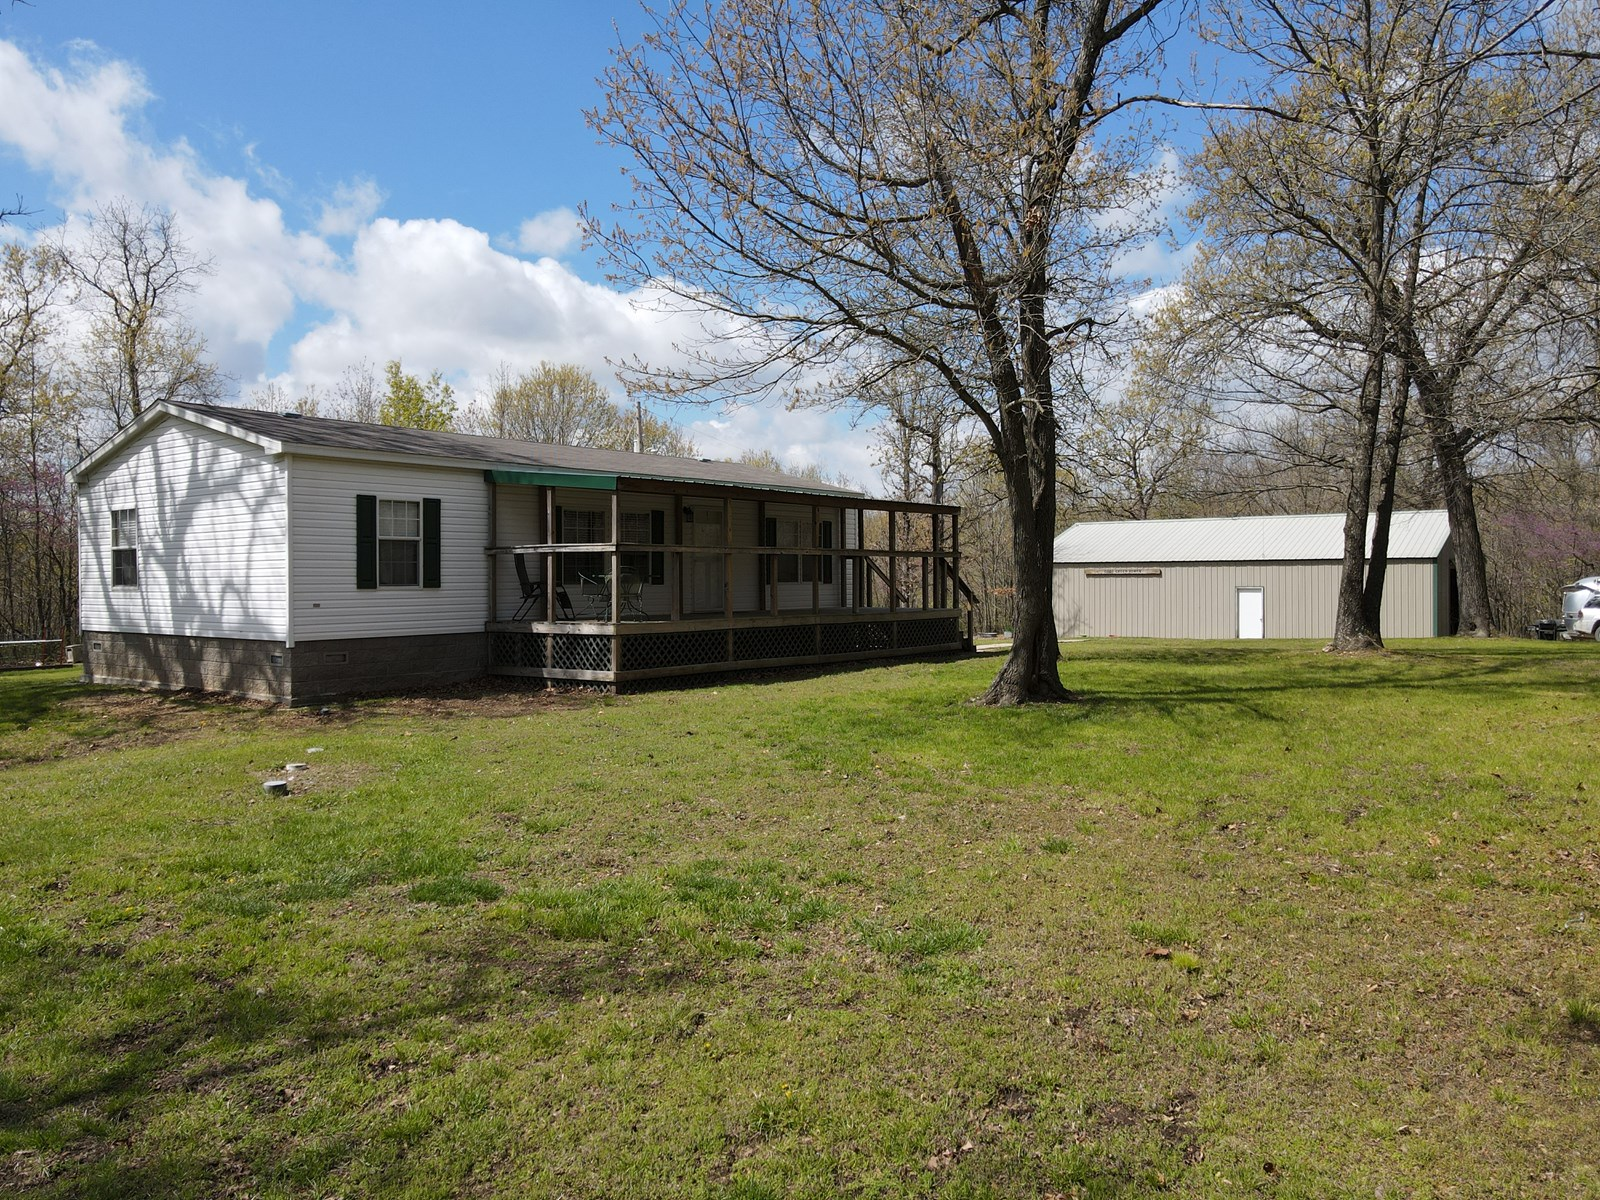 Country Home For Sale in Warsaw, Missouri